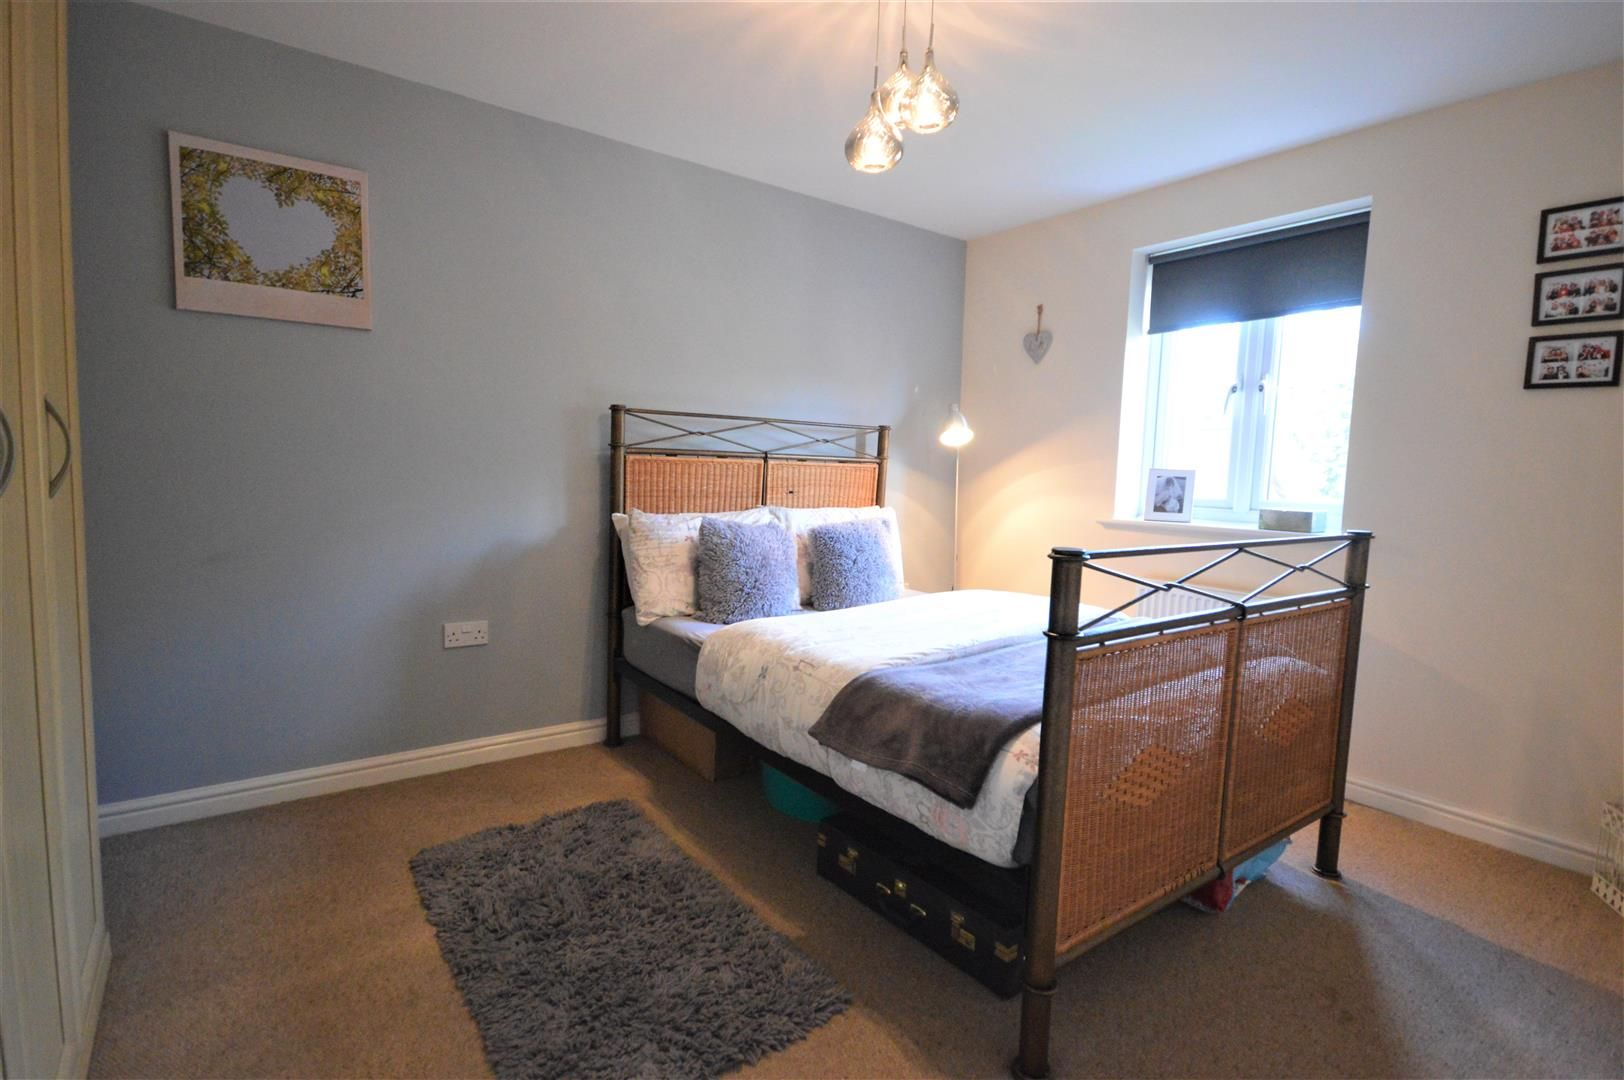 4 bed semi-detached for sale in Leominster  - Property Image 9